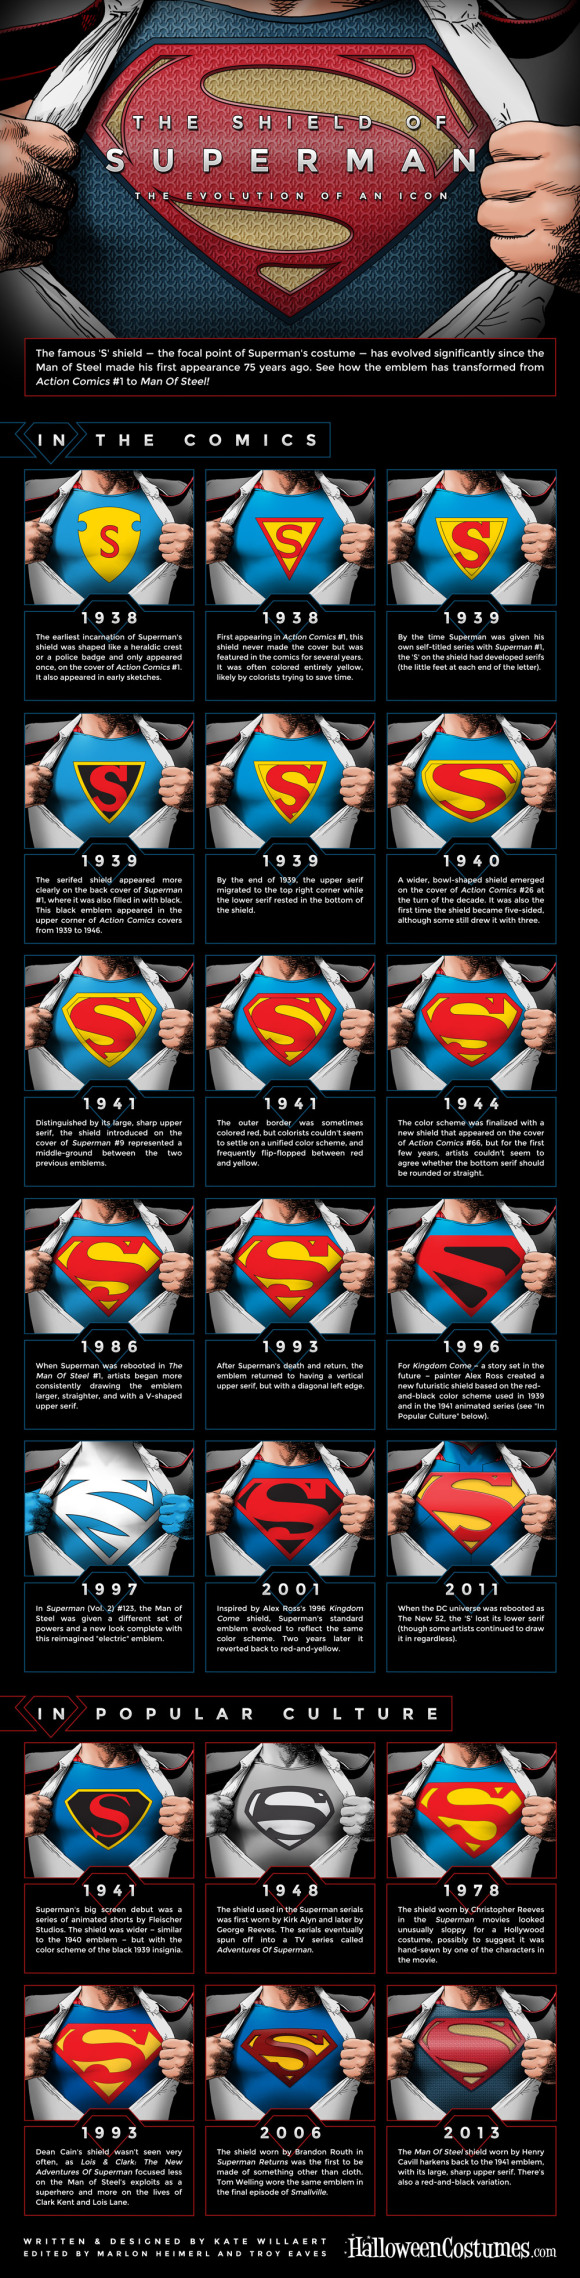 superman-infographic-full